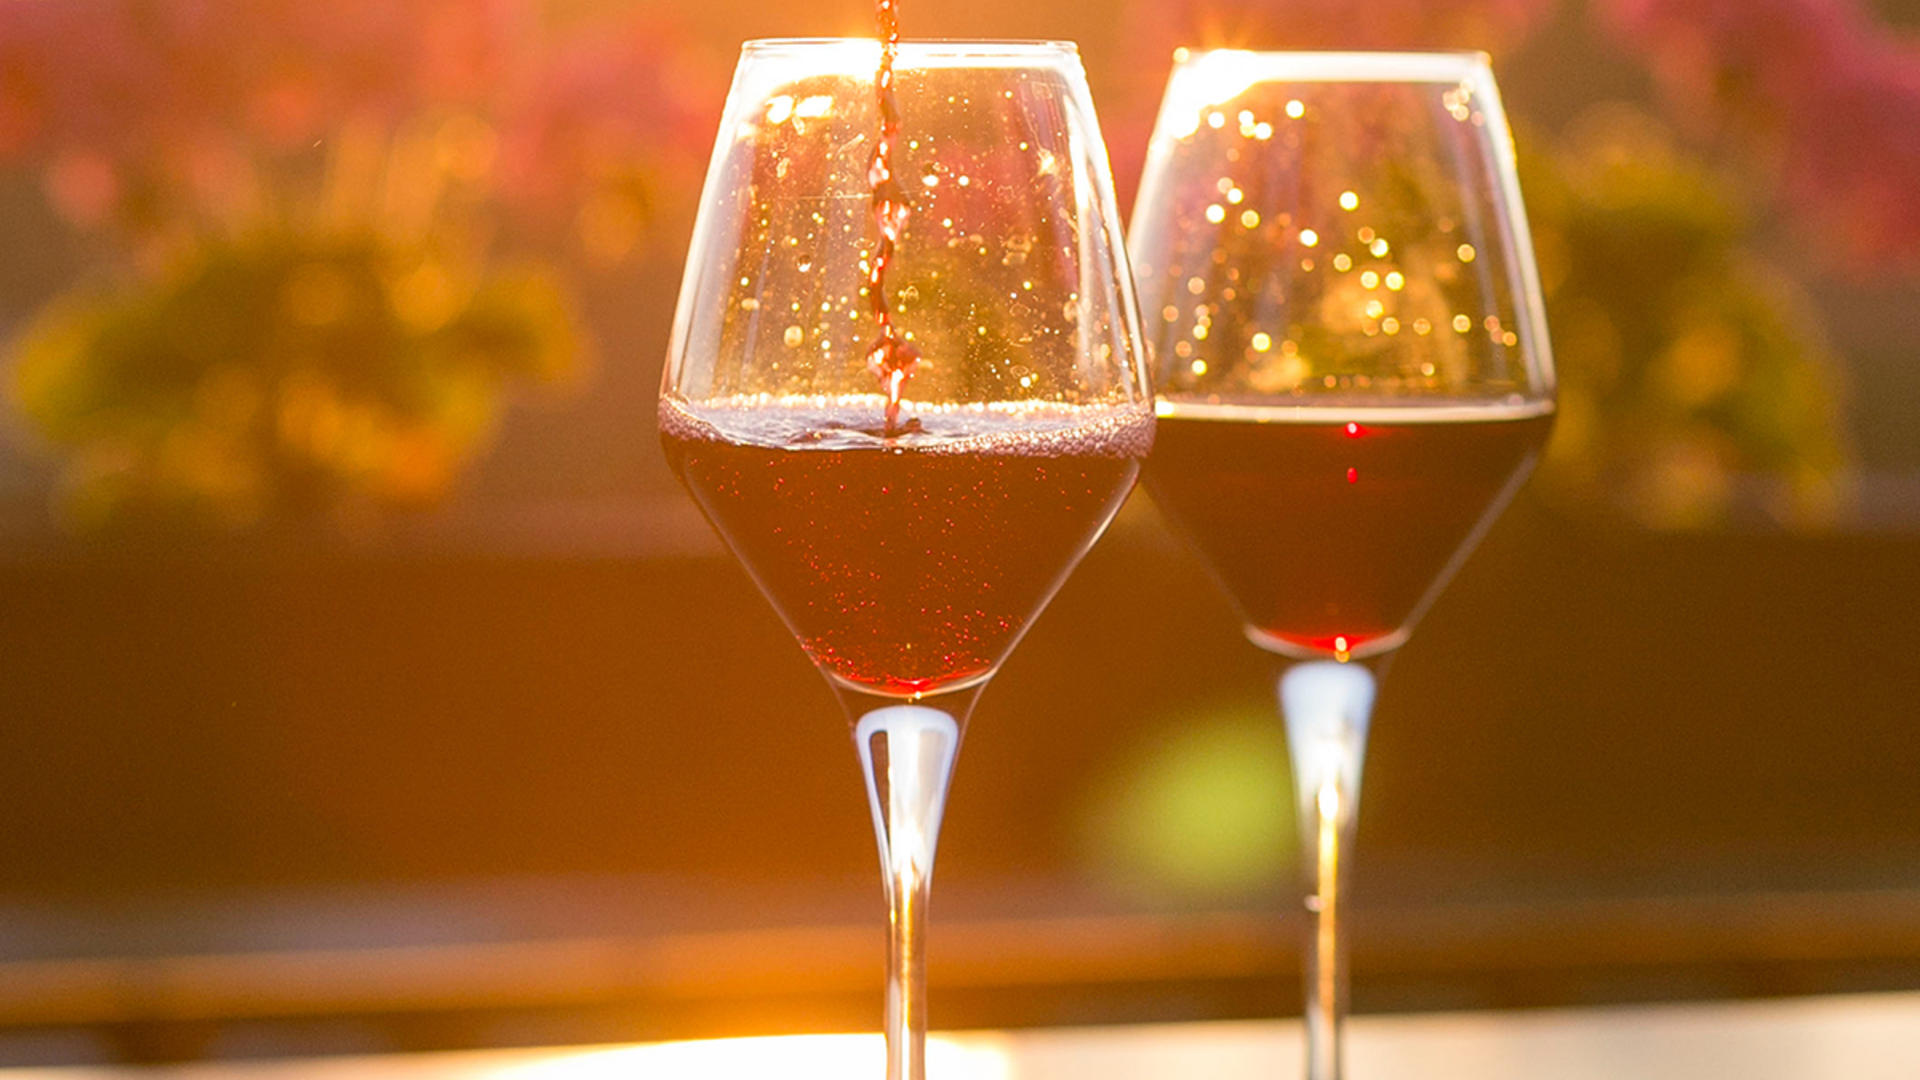 Introduction to Sensory Evaluation of Wine